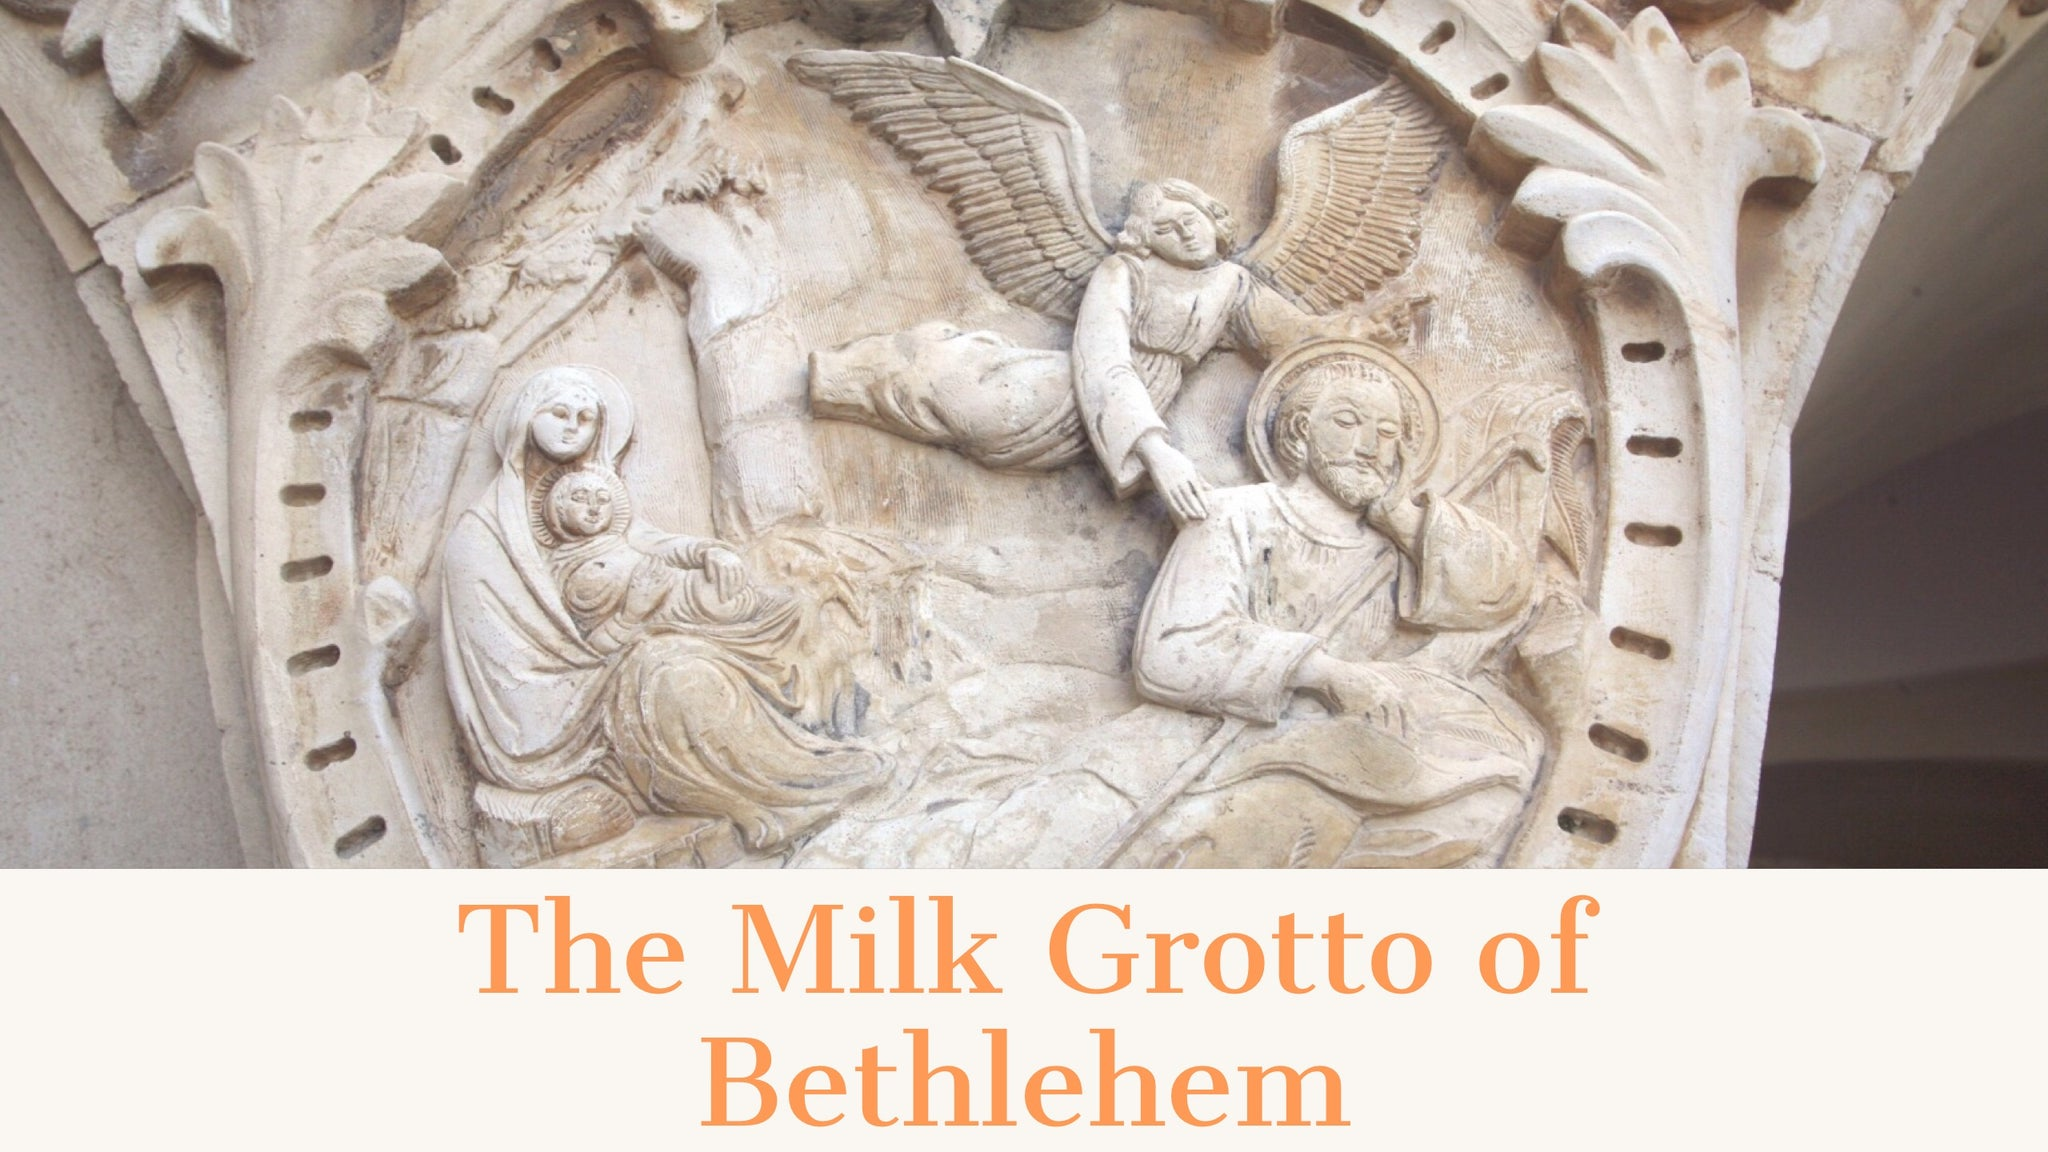 The Milk Grotto